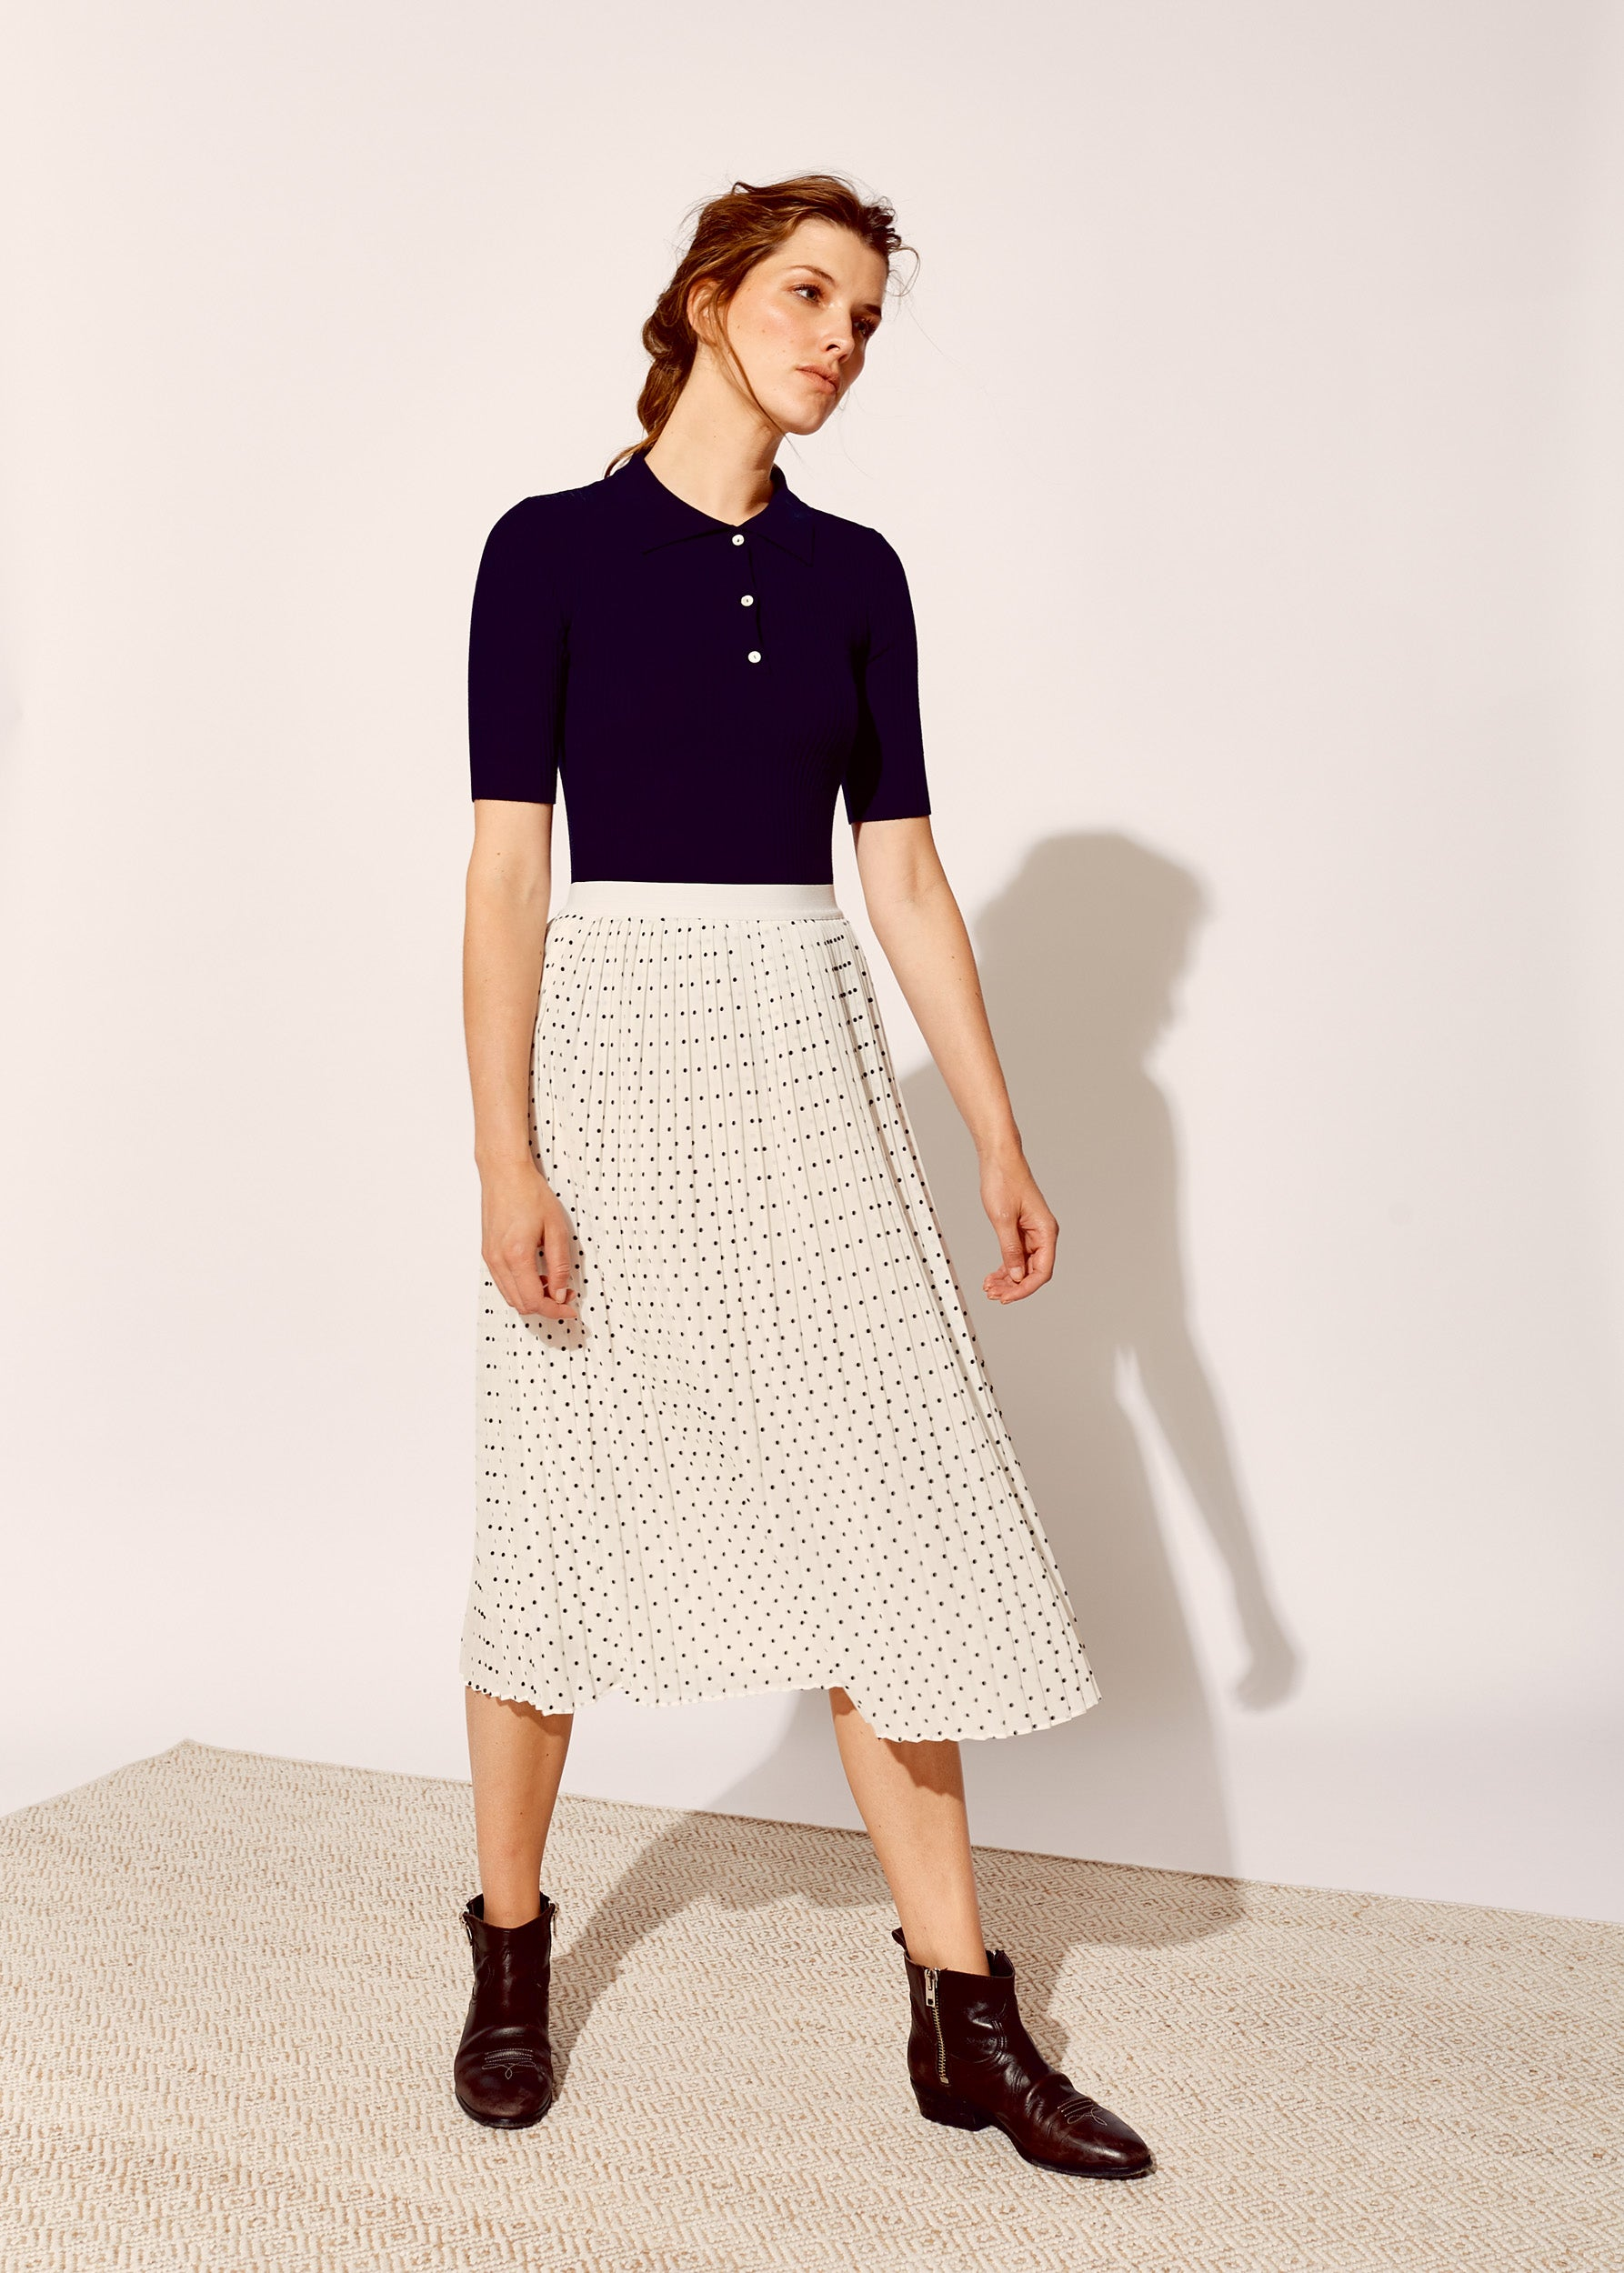 SKIRT INA - Skirts - SCAPA FASHION - SCAPA OFFICIAL